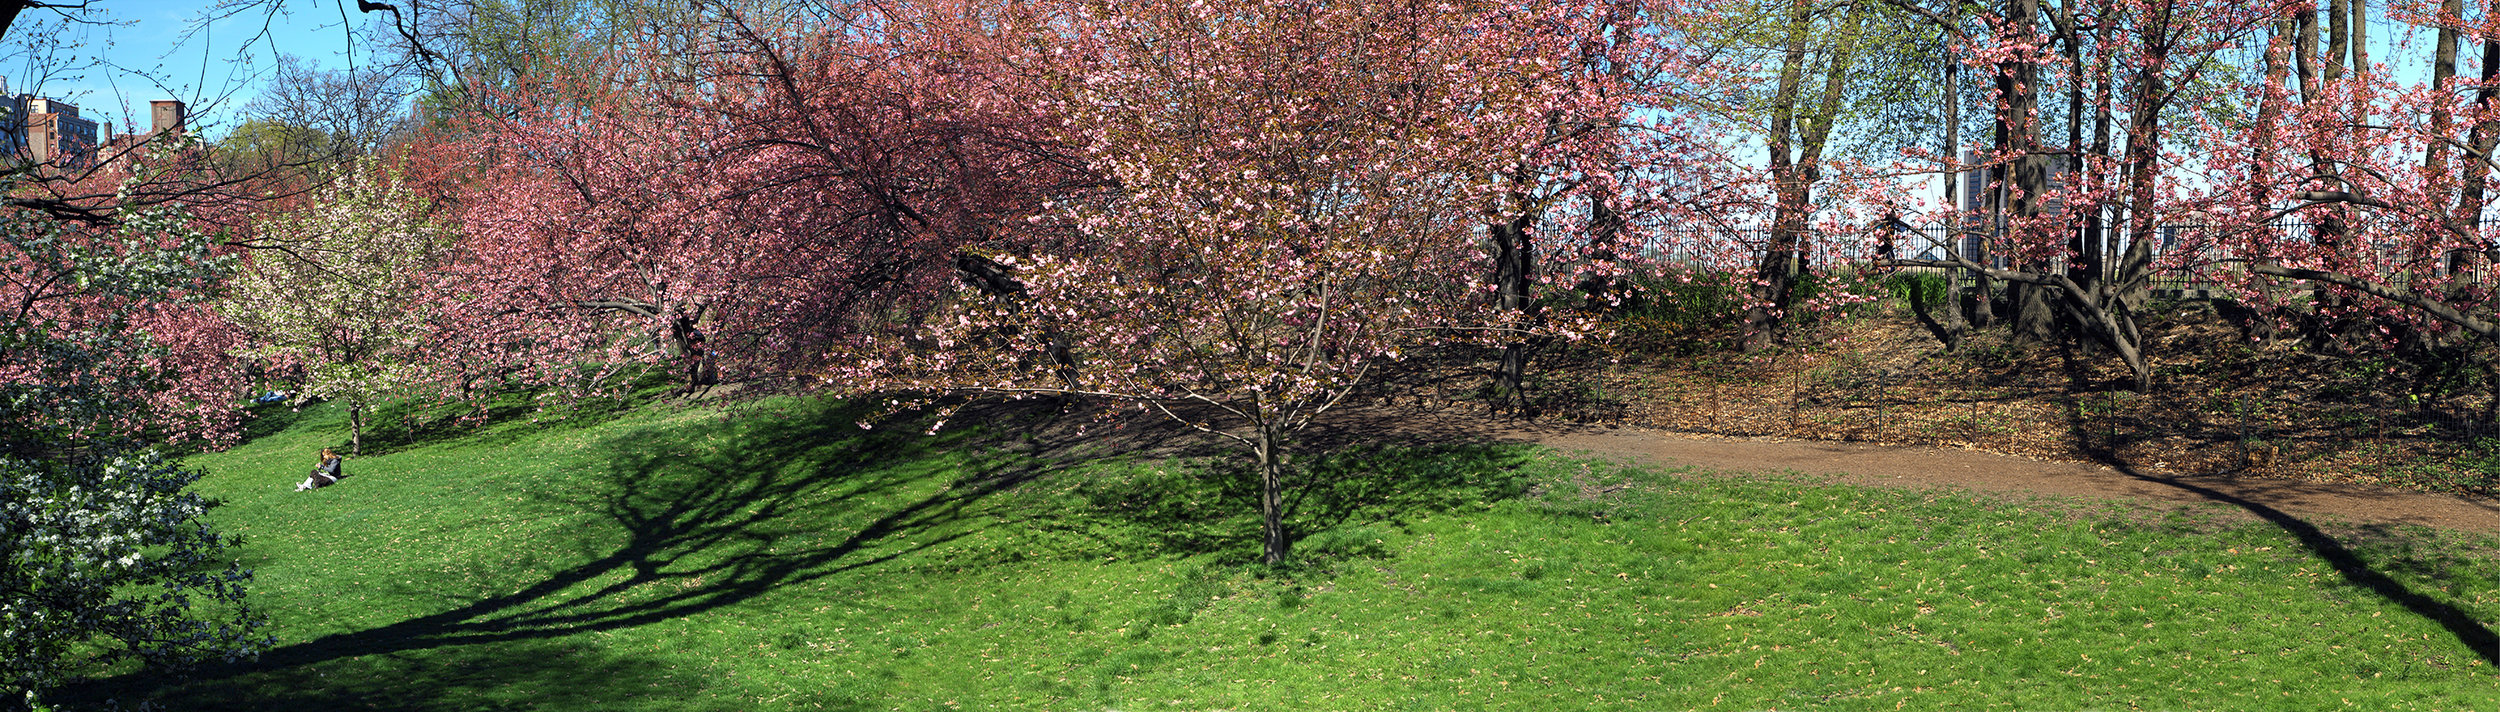 cherry blossom orchard near 90th street.jpg